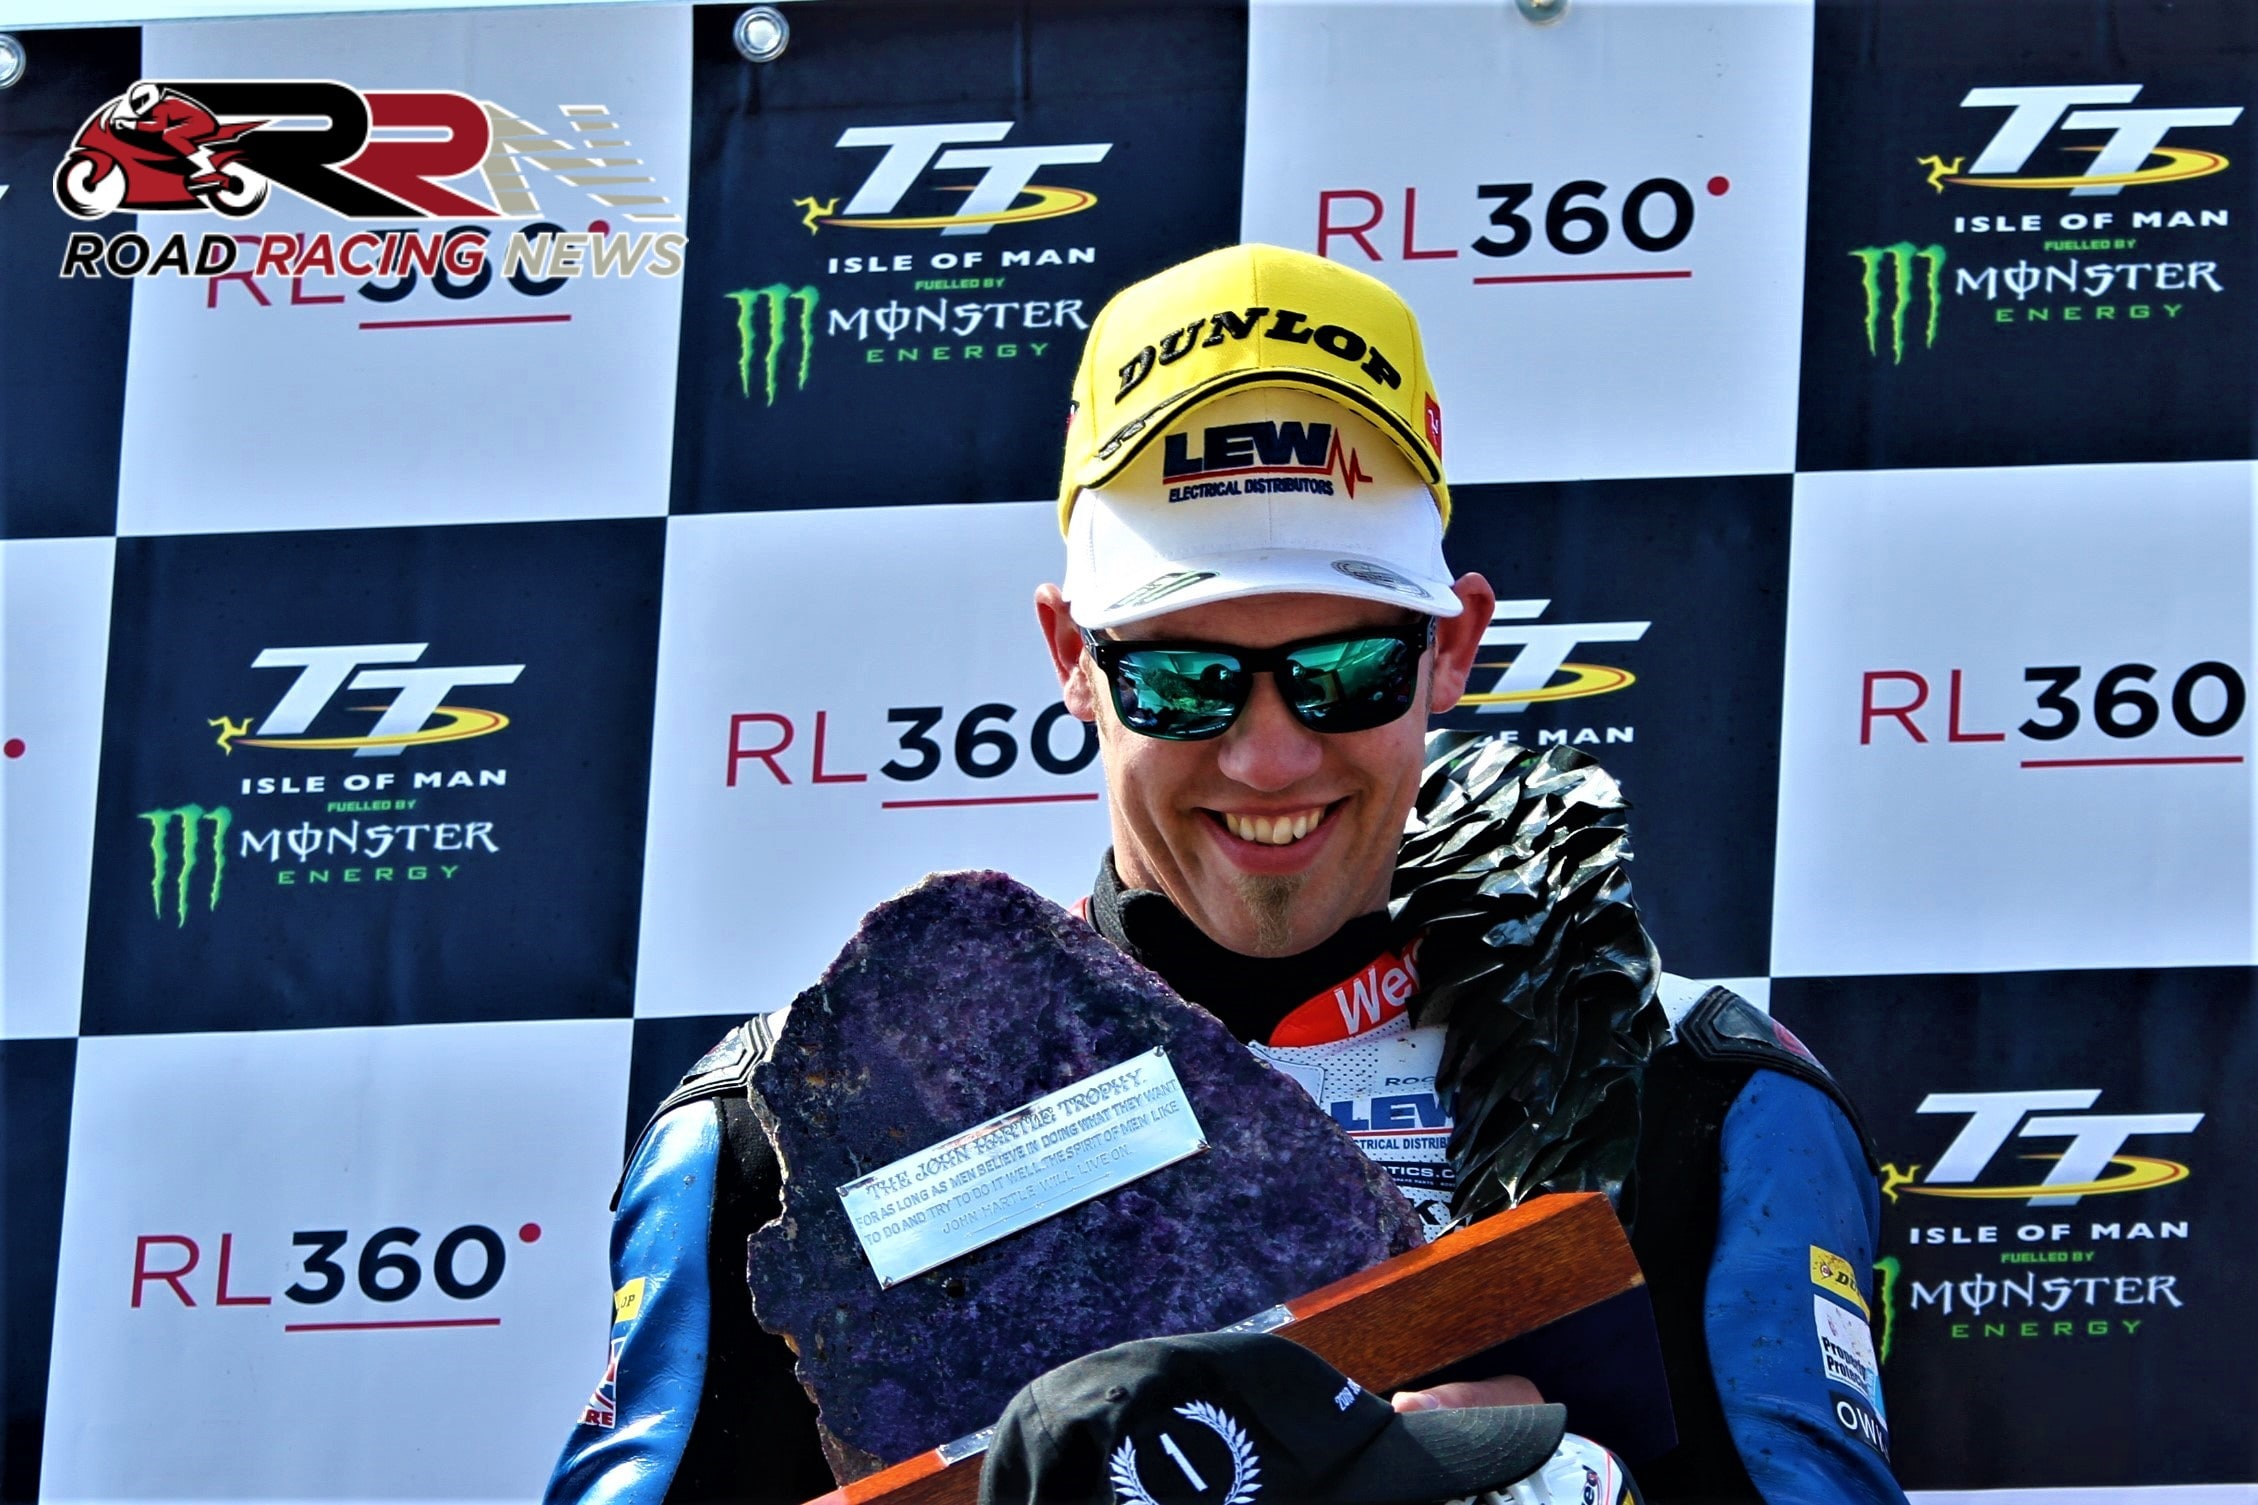 Event Re-Cap: Top Thirty Fastest Racers From TT 2019